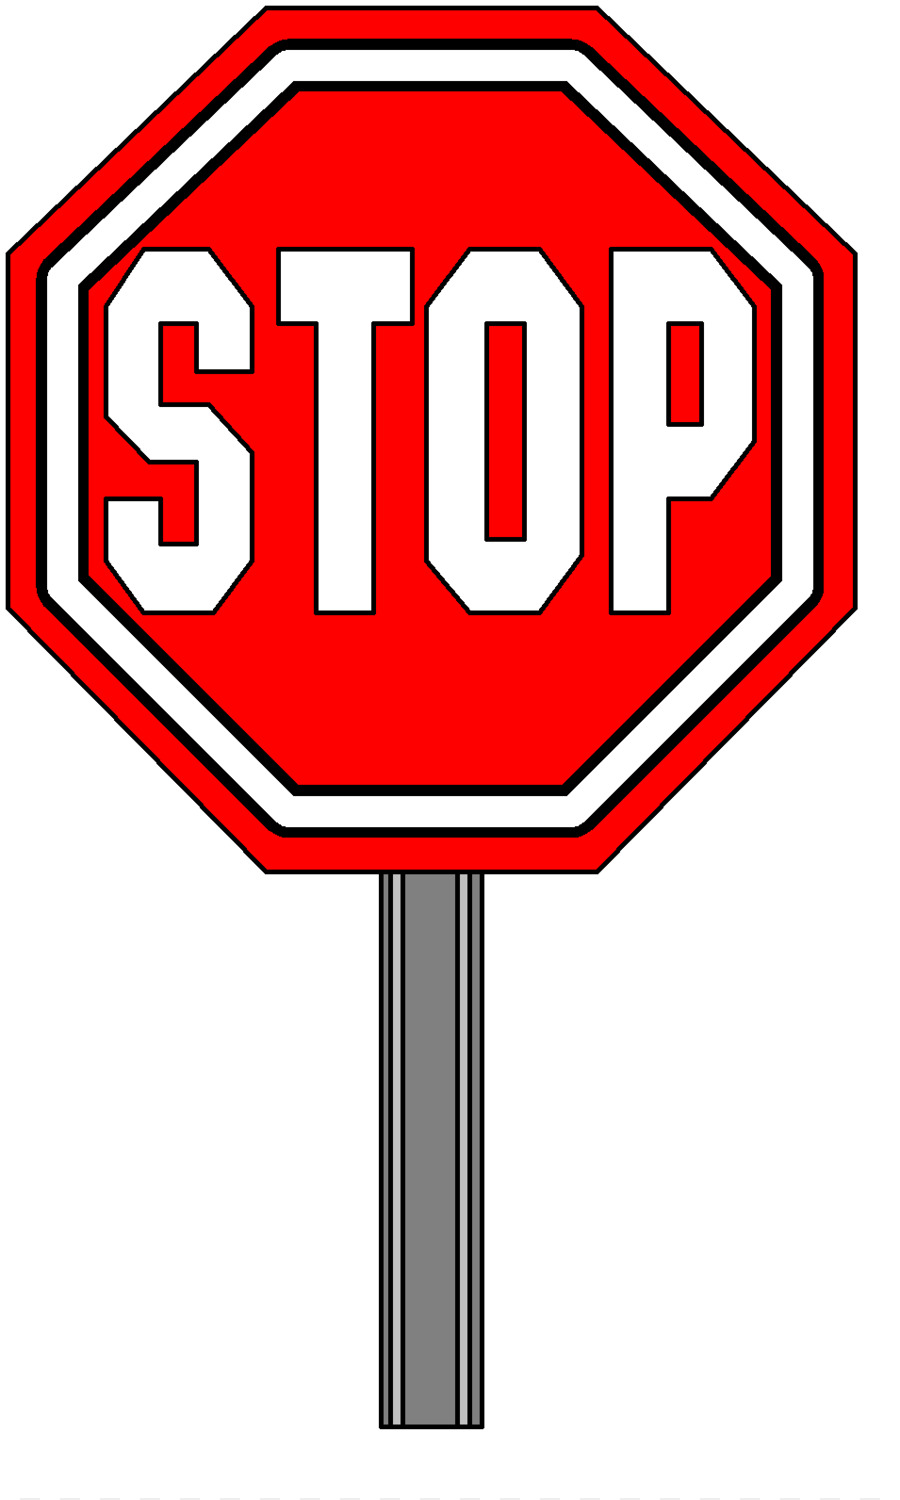 Clipart stop sign image royalty free stock Basketball Hoop Background png download - 955*1590 - Free ... image royalty free stock